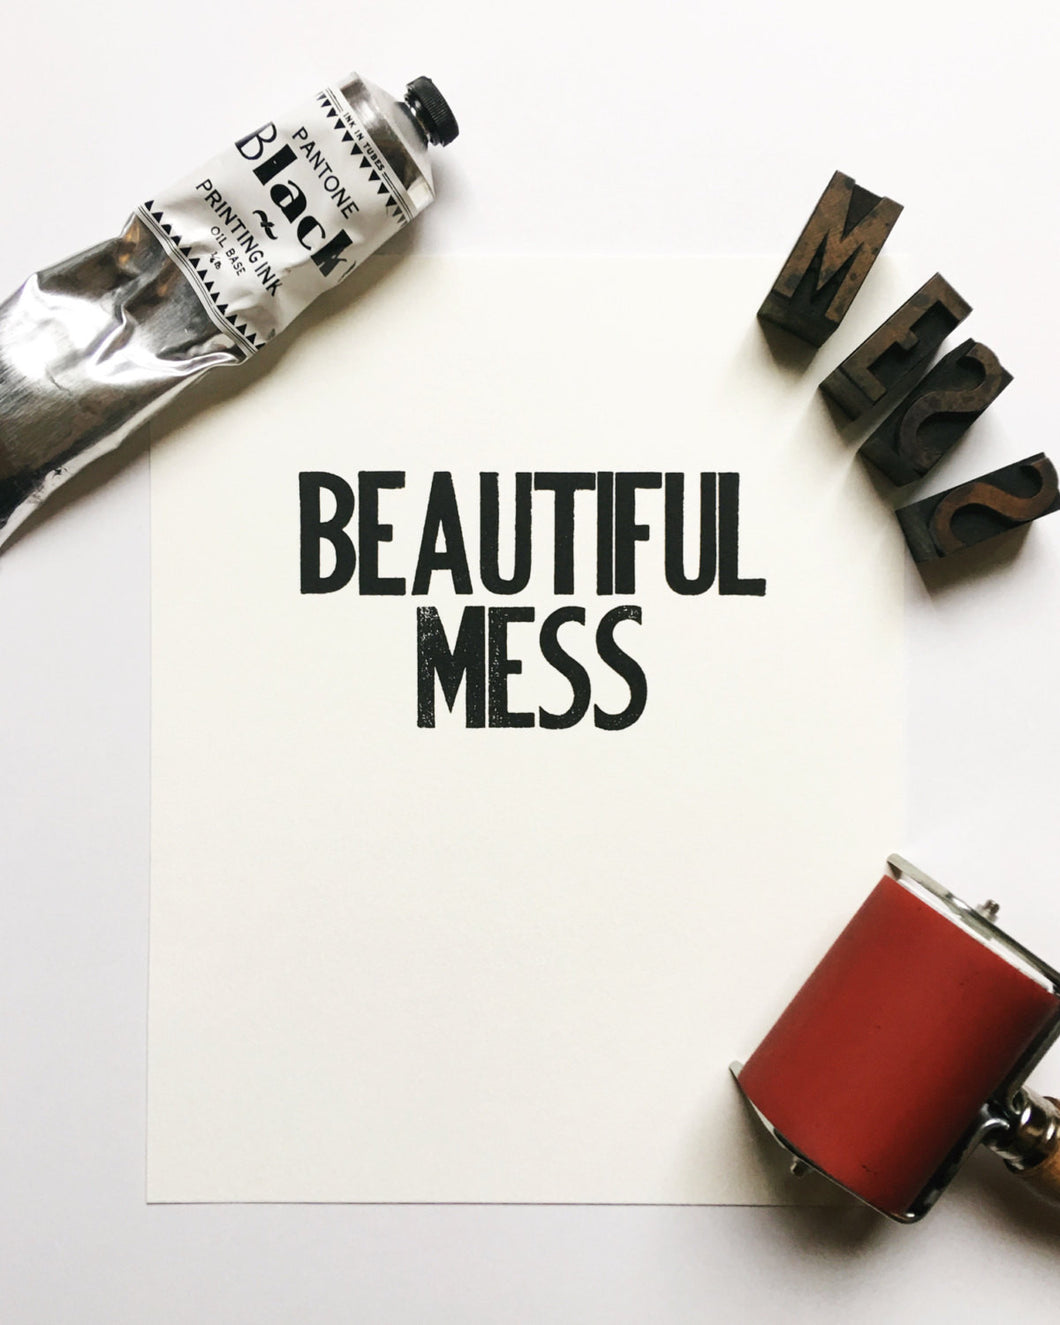 Beautiful Mess - Letterpress Poster Wall Art Print 8 x 10